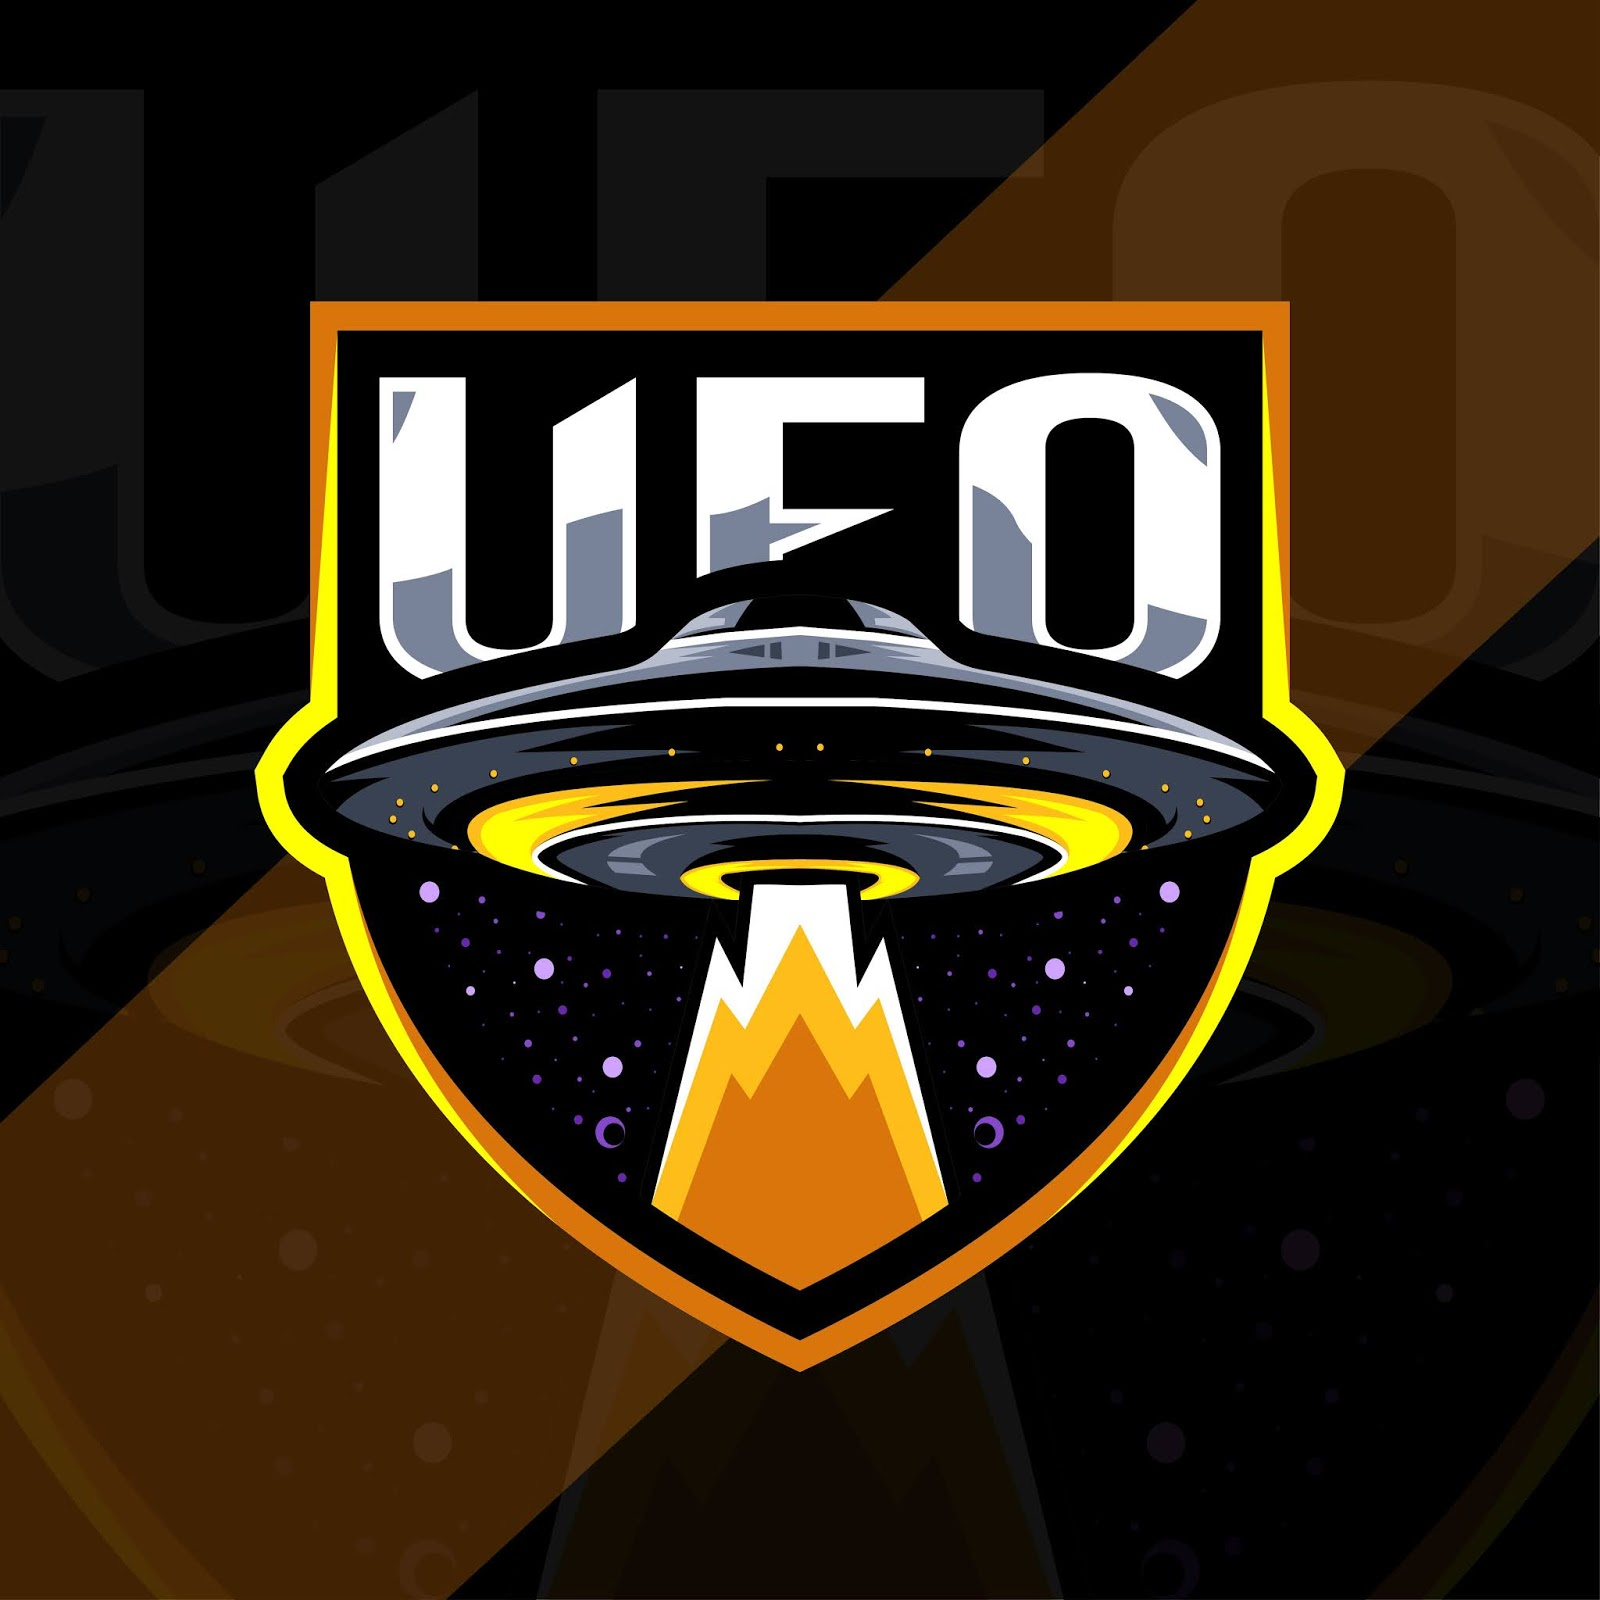 Ufo Mascot Logo Esport Template Design Free Download Vector CDR, AI, EPS and PNG Formats